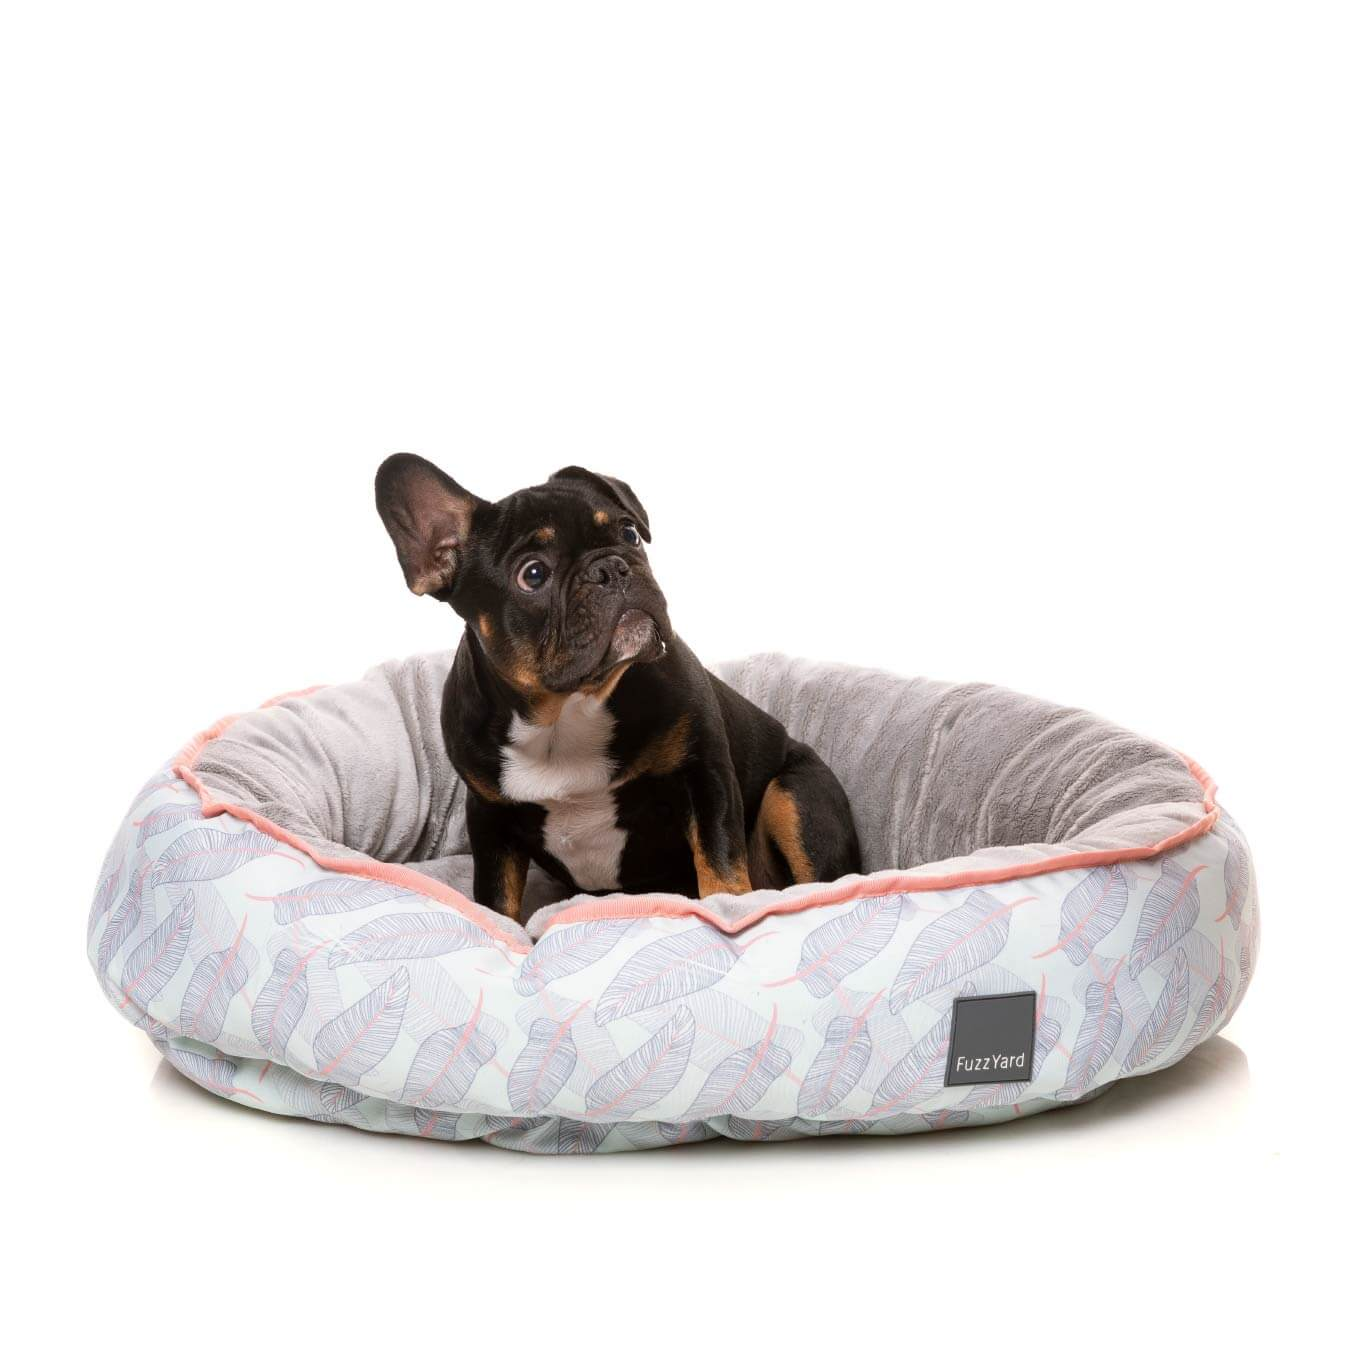 FuzzYard Paia Reversible Pet Bed - Vanillapup Online Pet Store